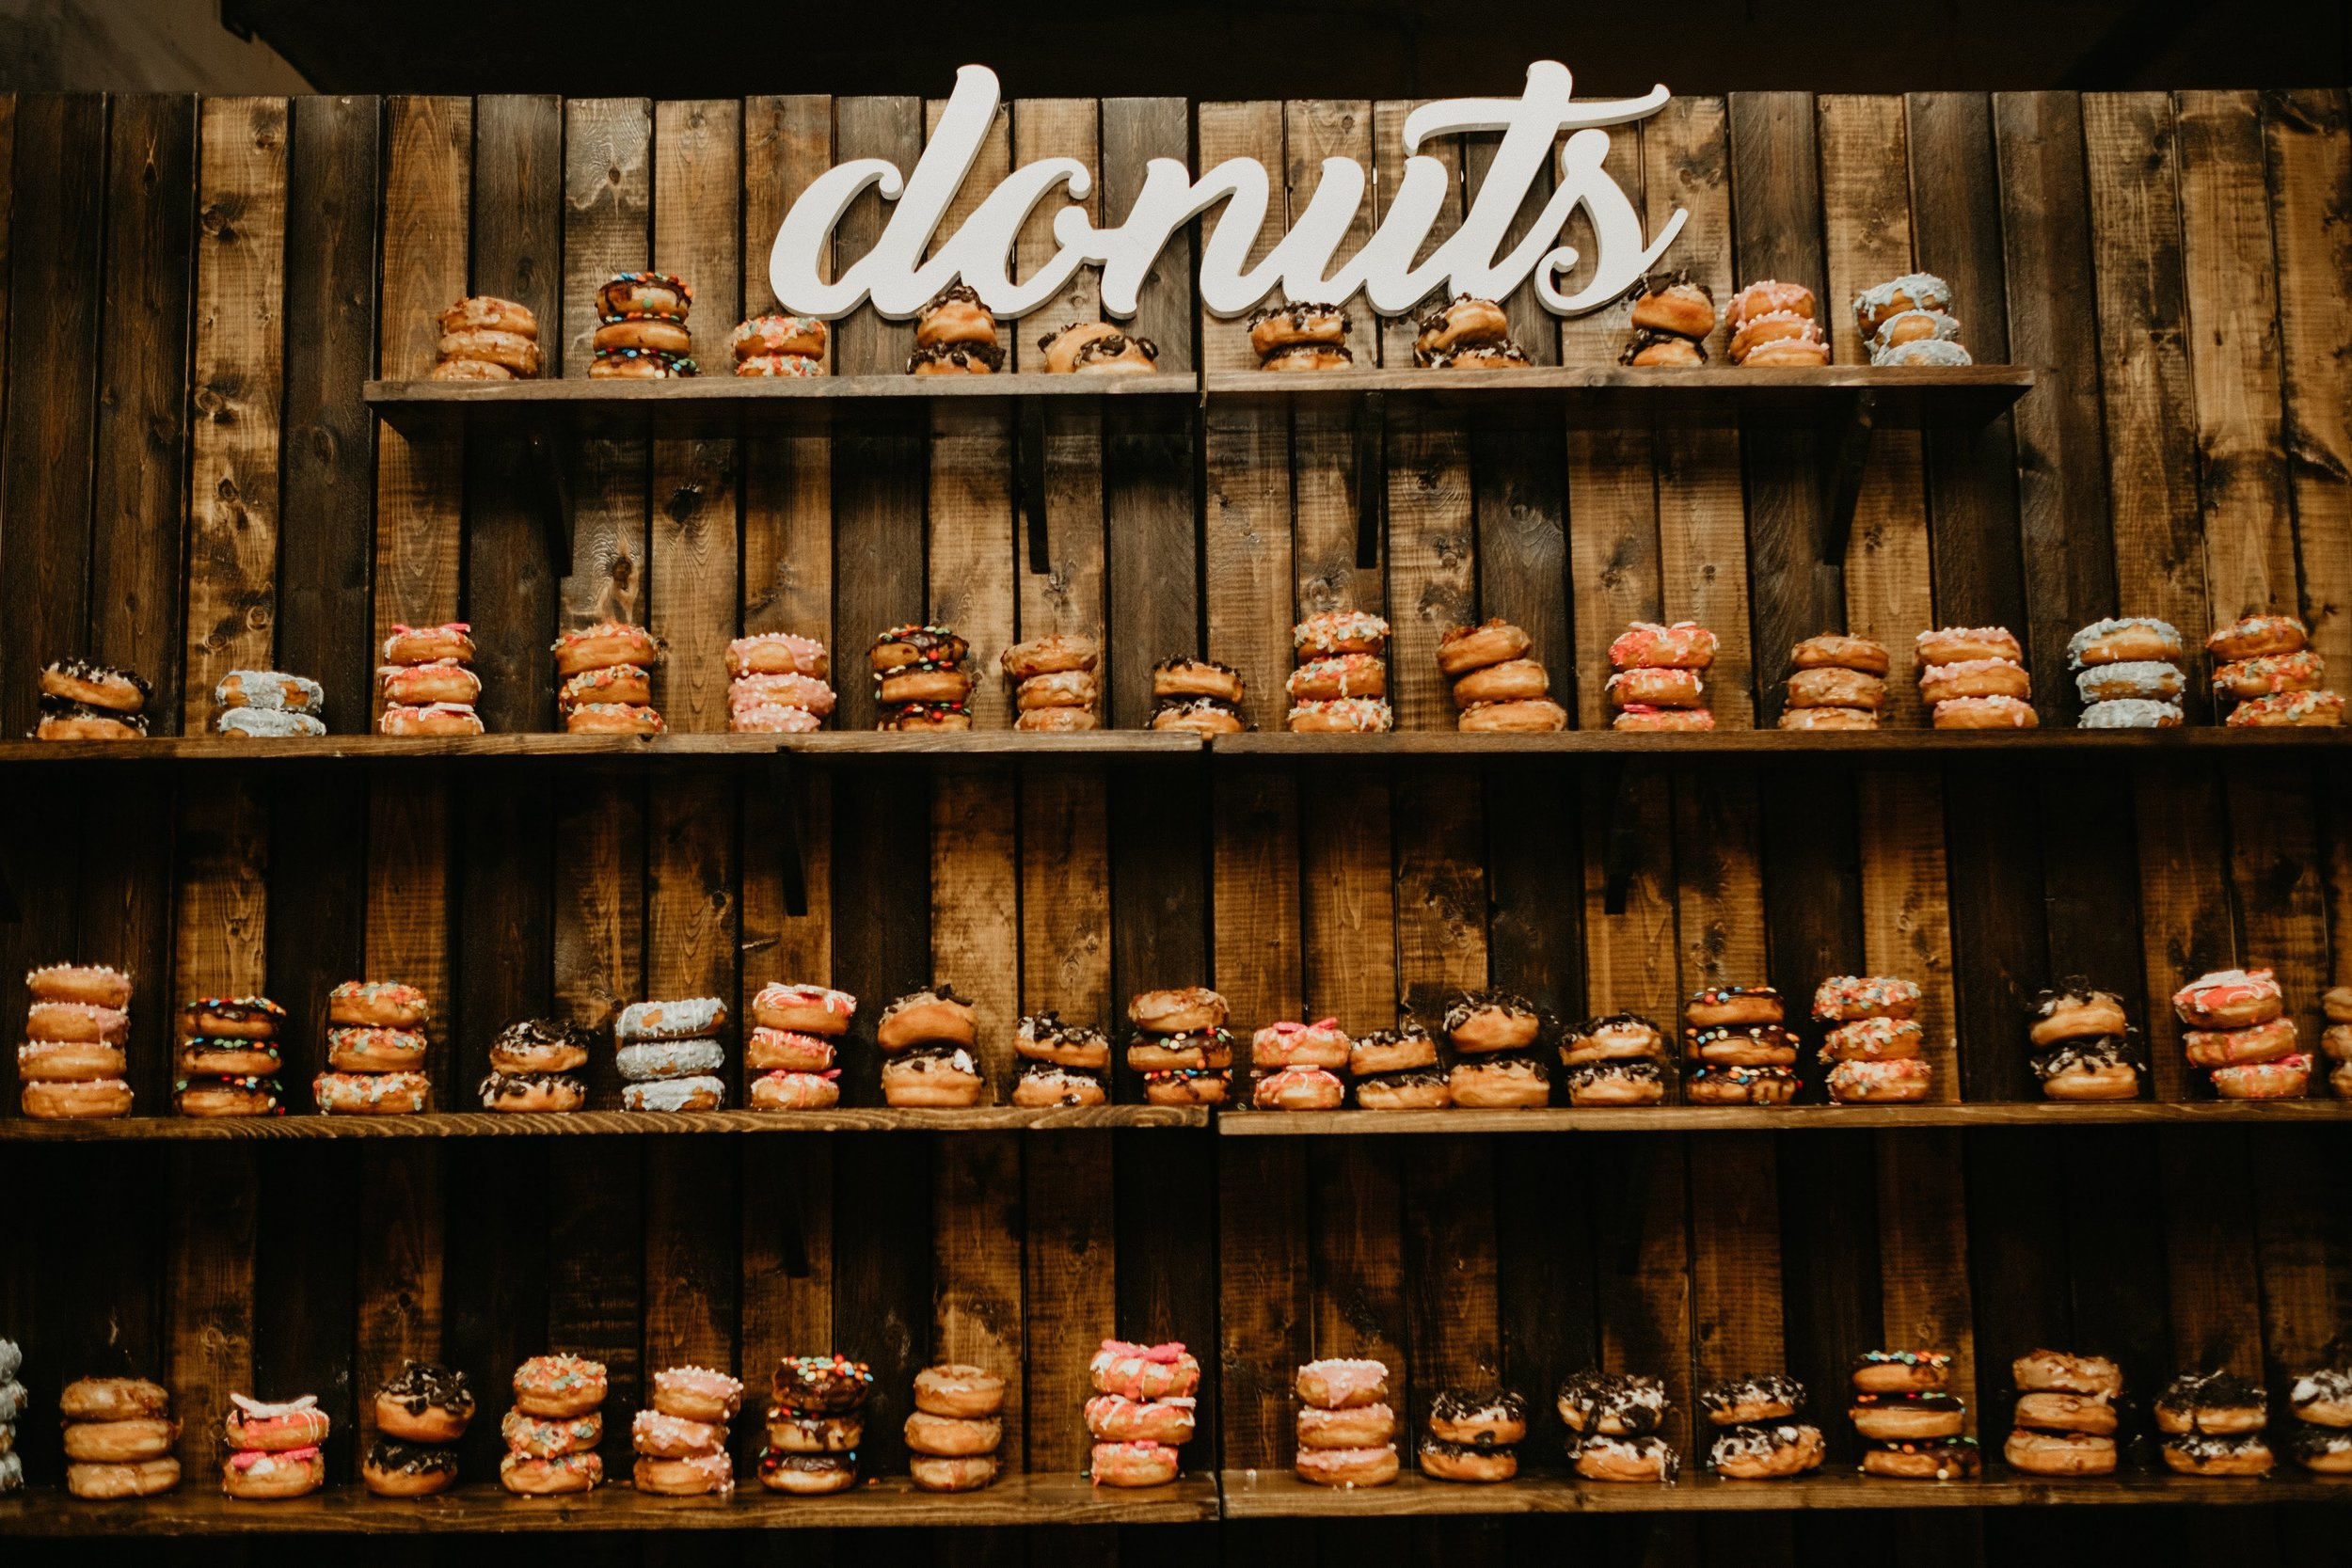 Our team created an art installation of love and sugar with the delicious confections from the Donut Bar.